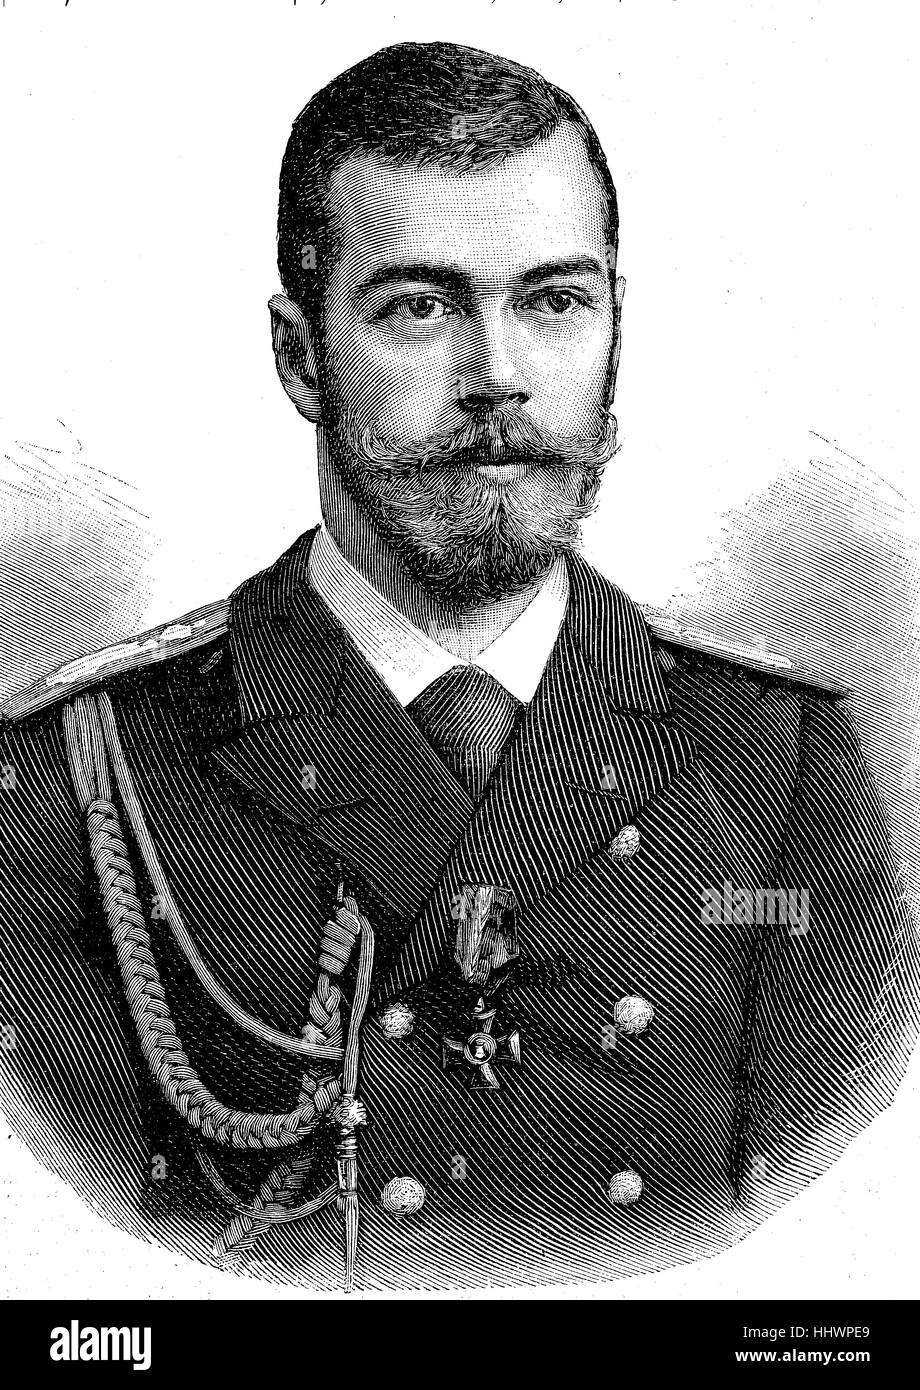 Nicholas II or Nikolai II. Aleksandrovich, 18 May 1868 - 17 July 1918, was the last Emperor of Russia, ruling from - Stock Image